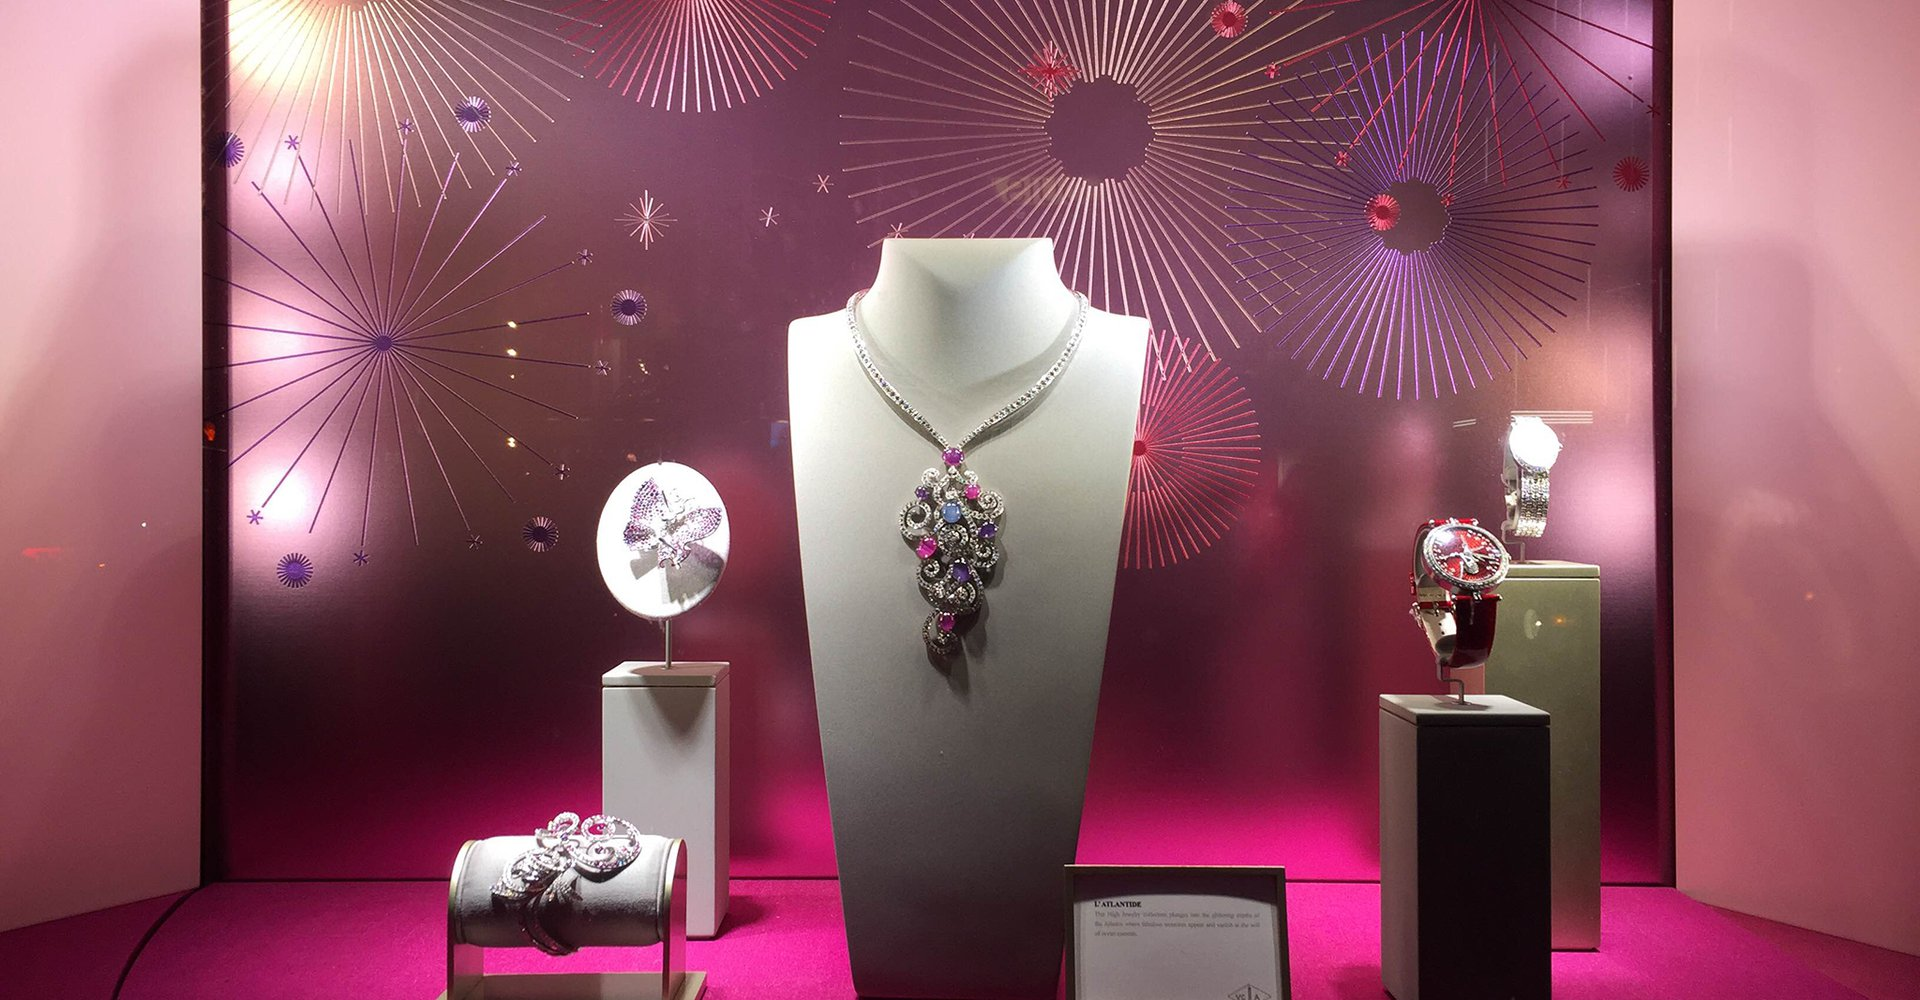 van-cleef-arpels-5th-ave-feb-2016-07.jpg